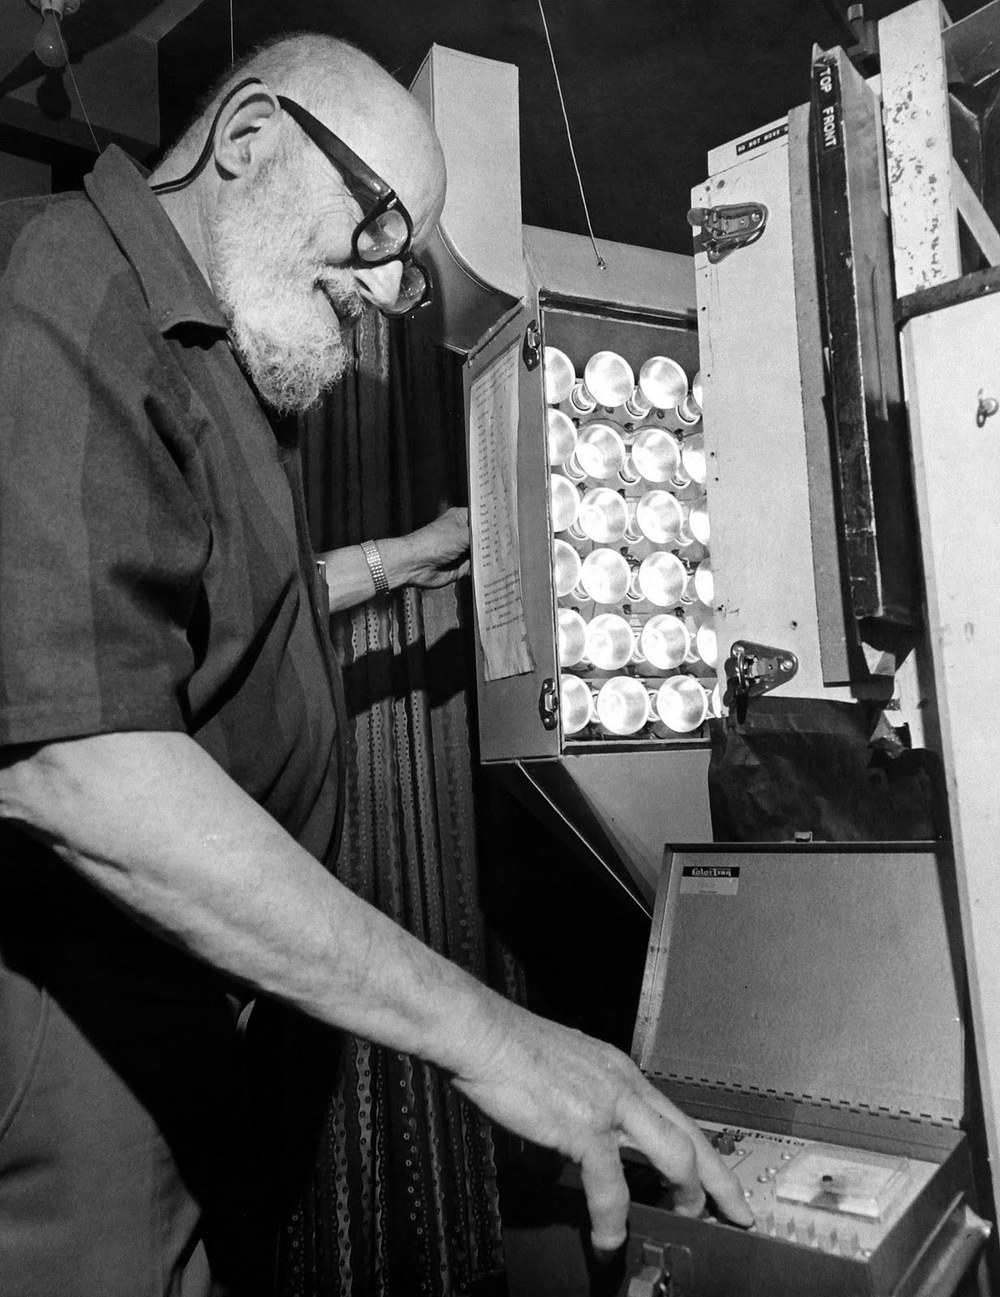 Ansel Adams in his personal darkroom